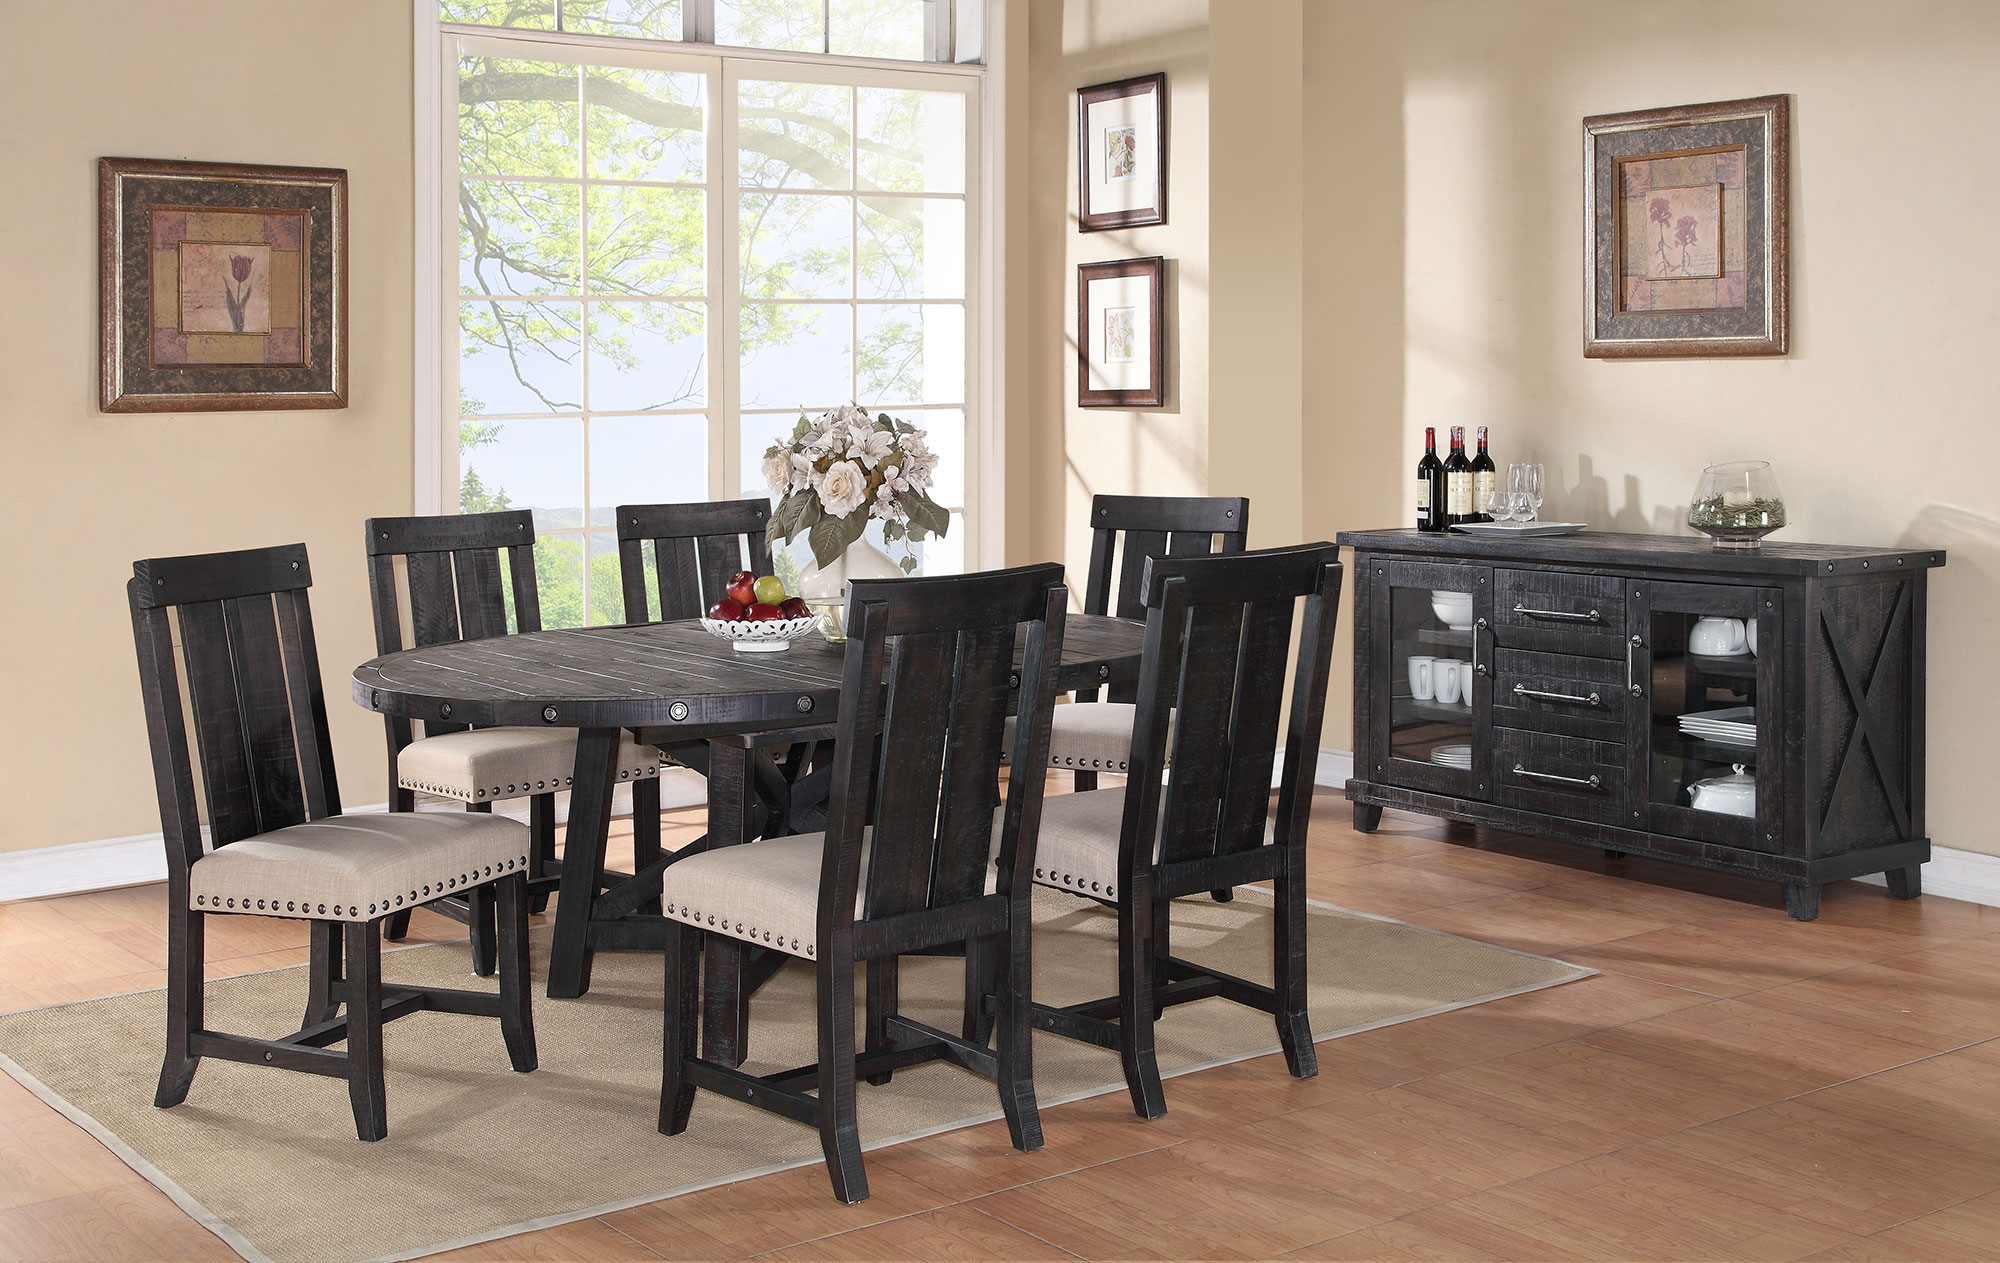 Yosemite dining set